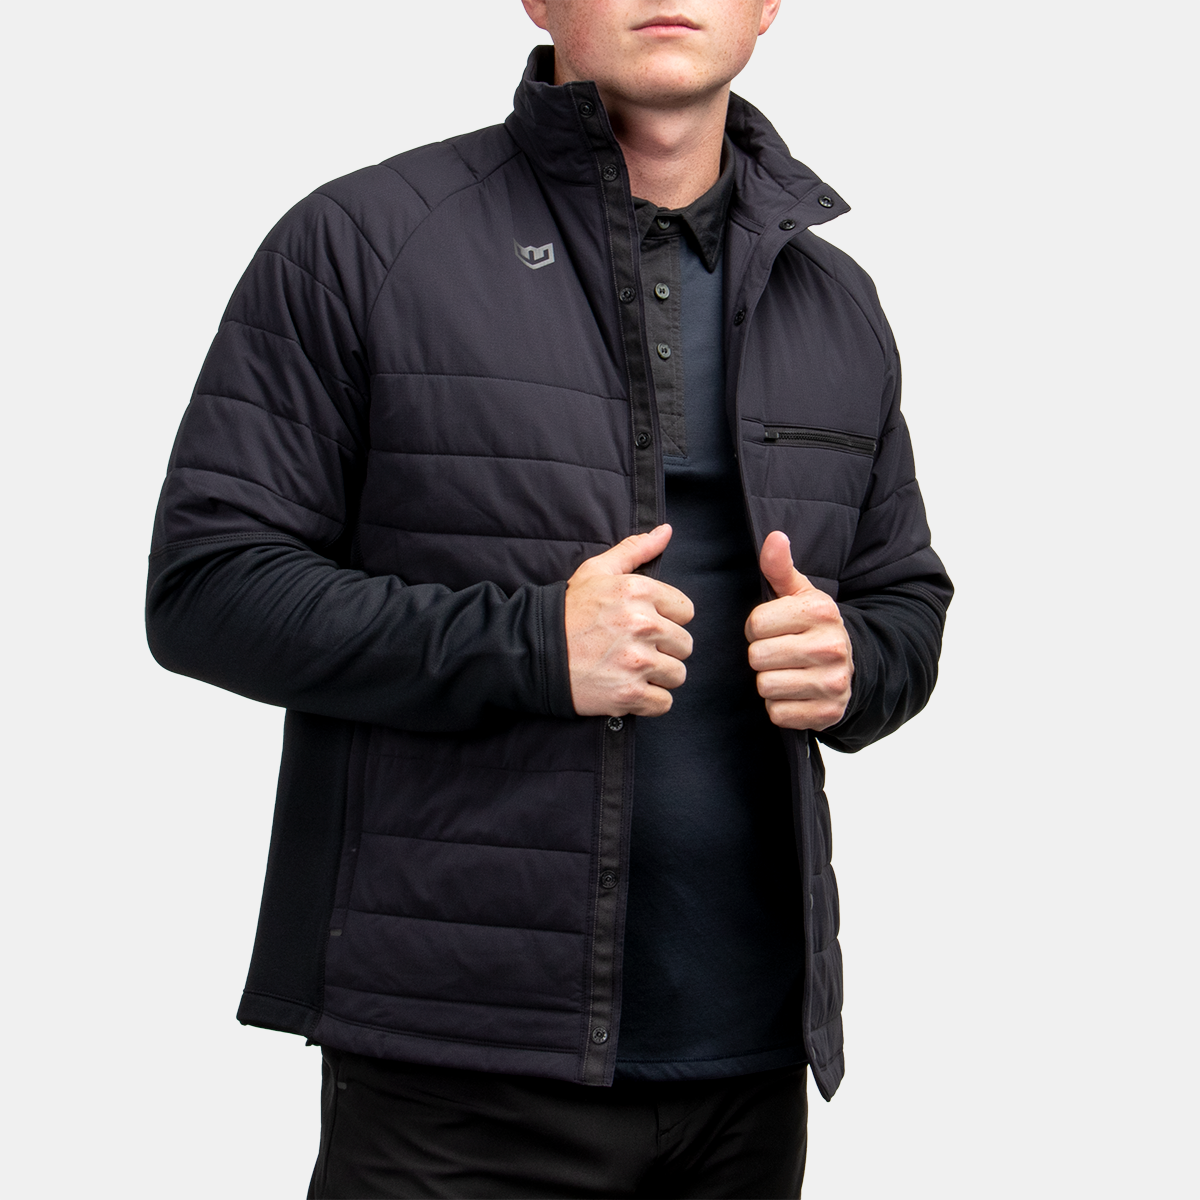 Ace Hybrid Jacket 3.0 - Black